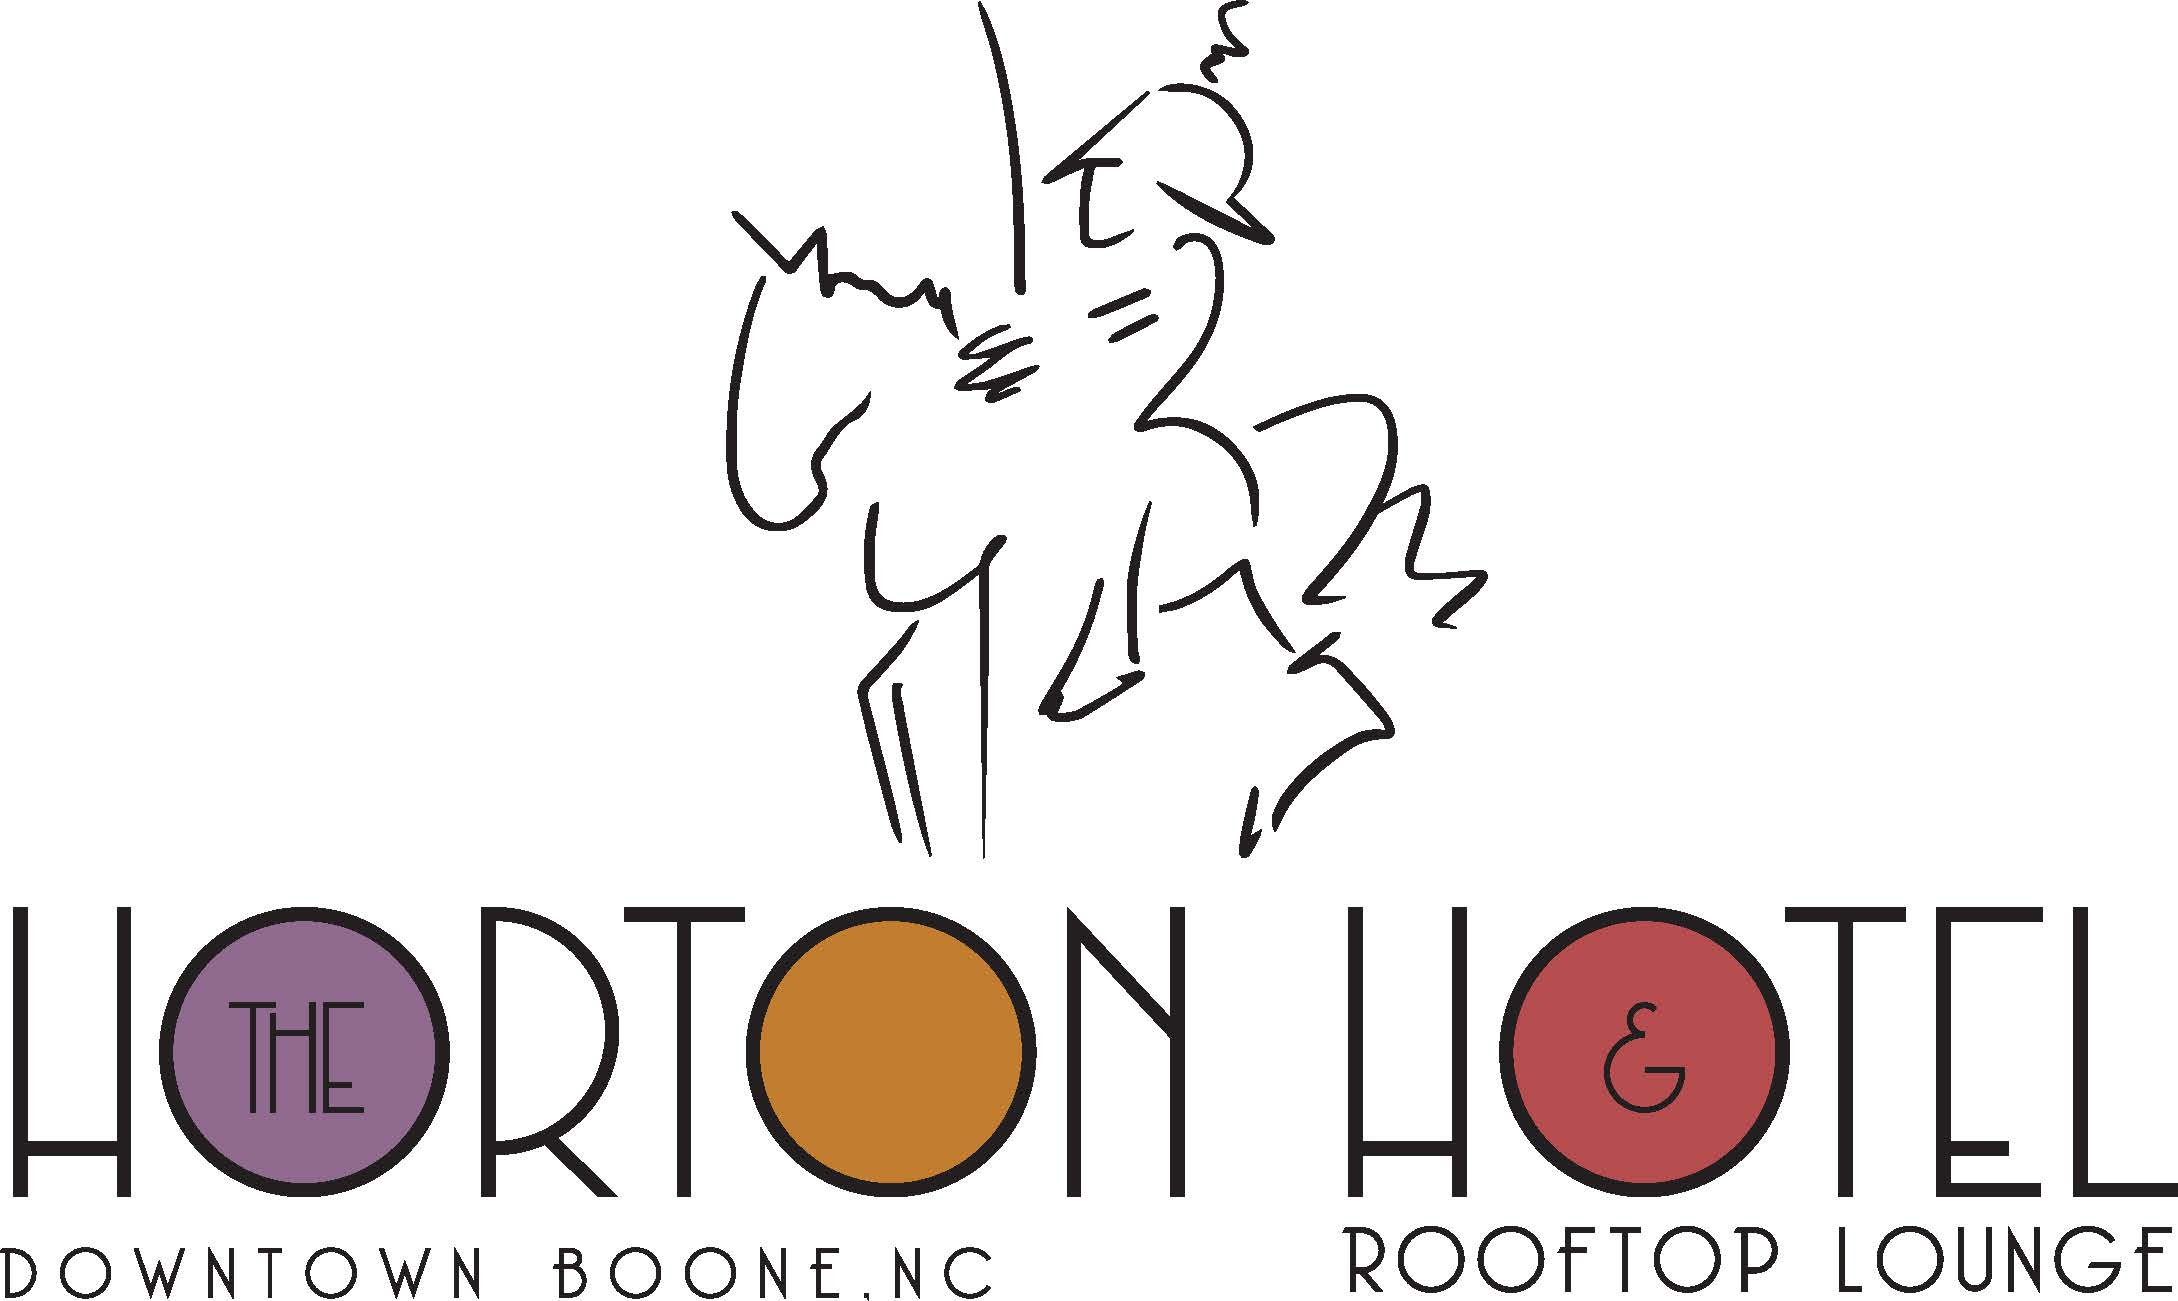 THE HORTON ROOFTOP LOUNGE